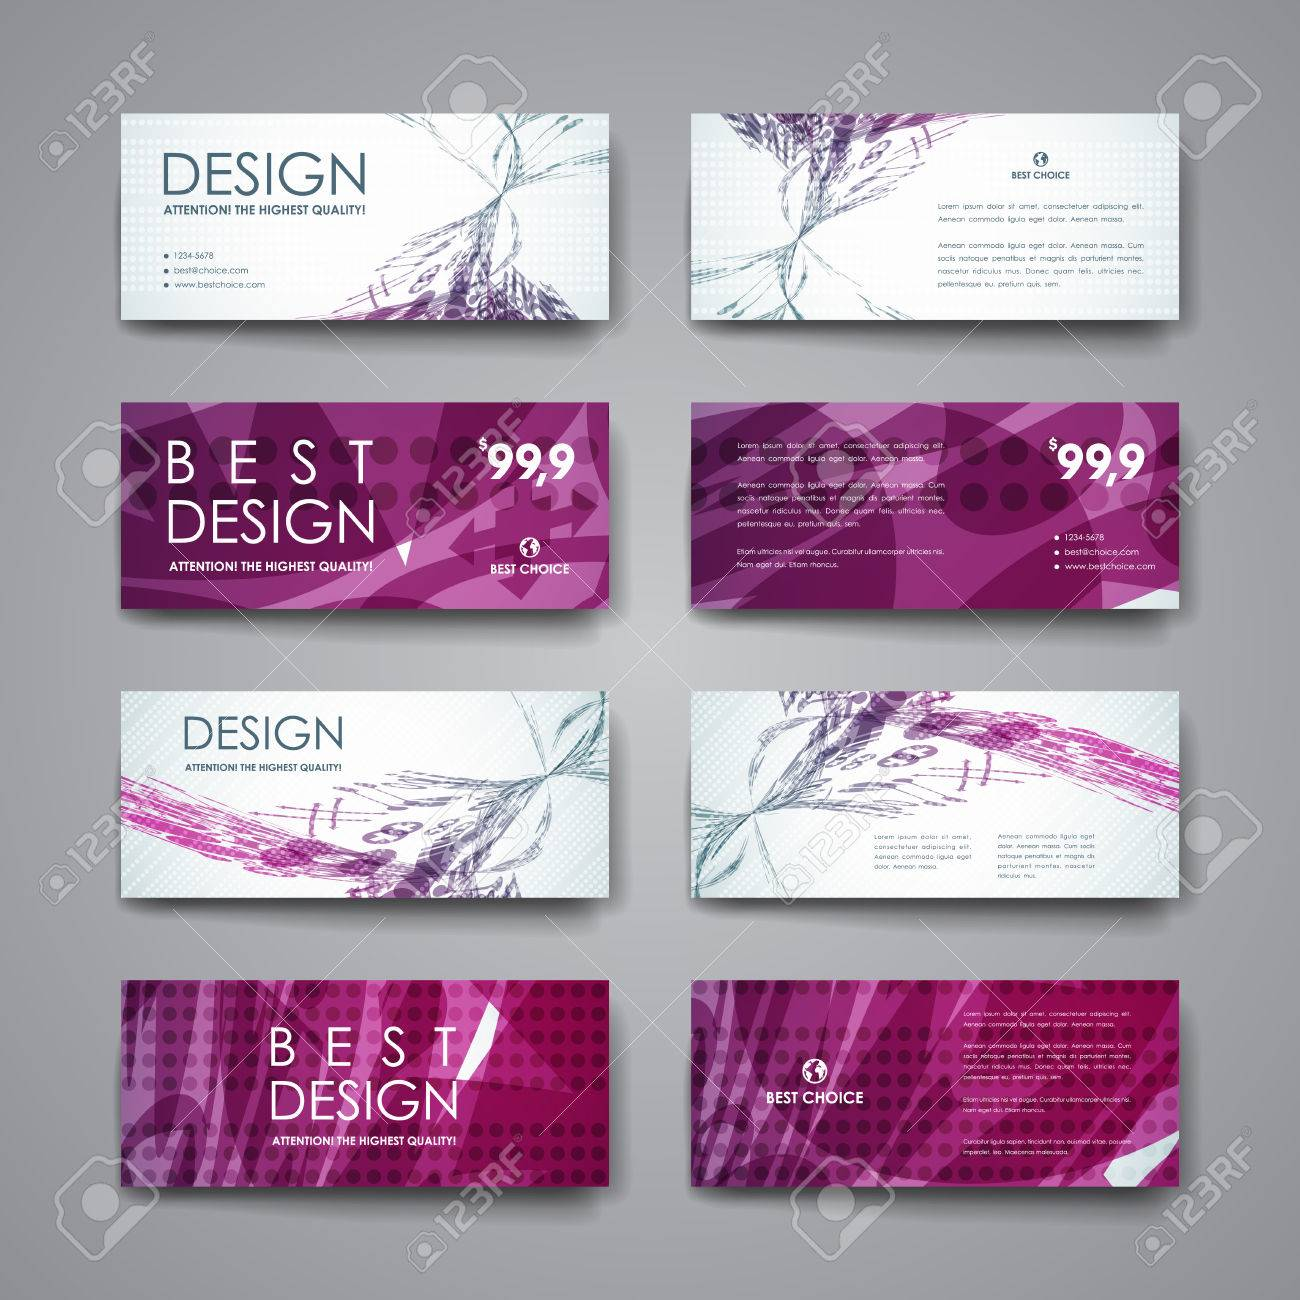 Set of modern design banner template in abstract background style. Beautiful design and layout - 51381535